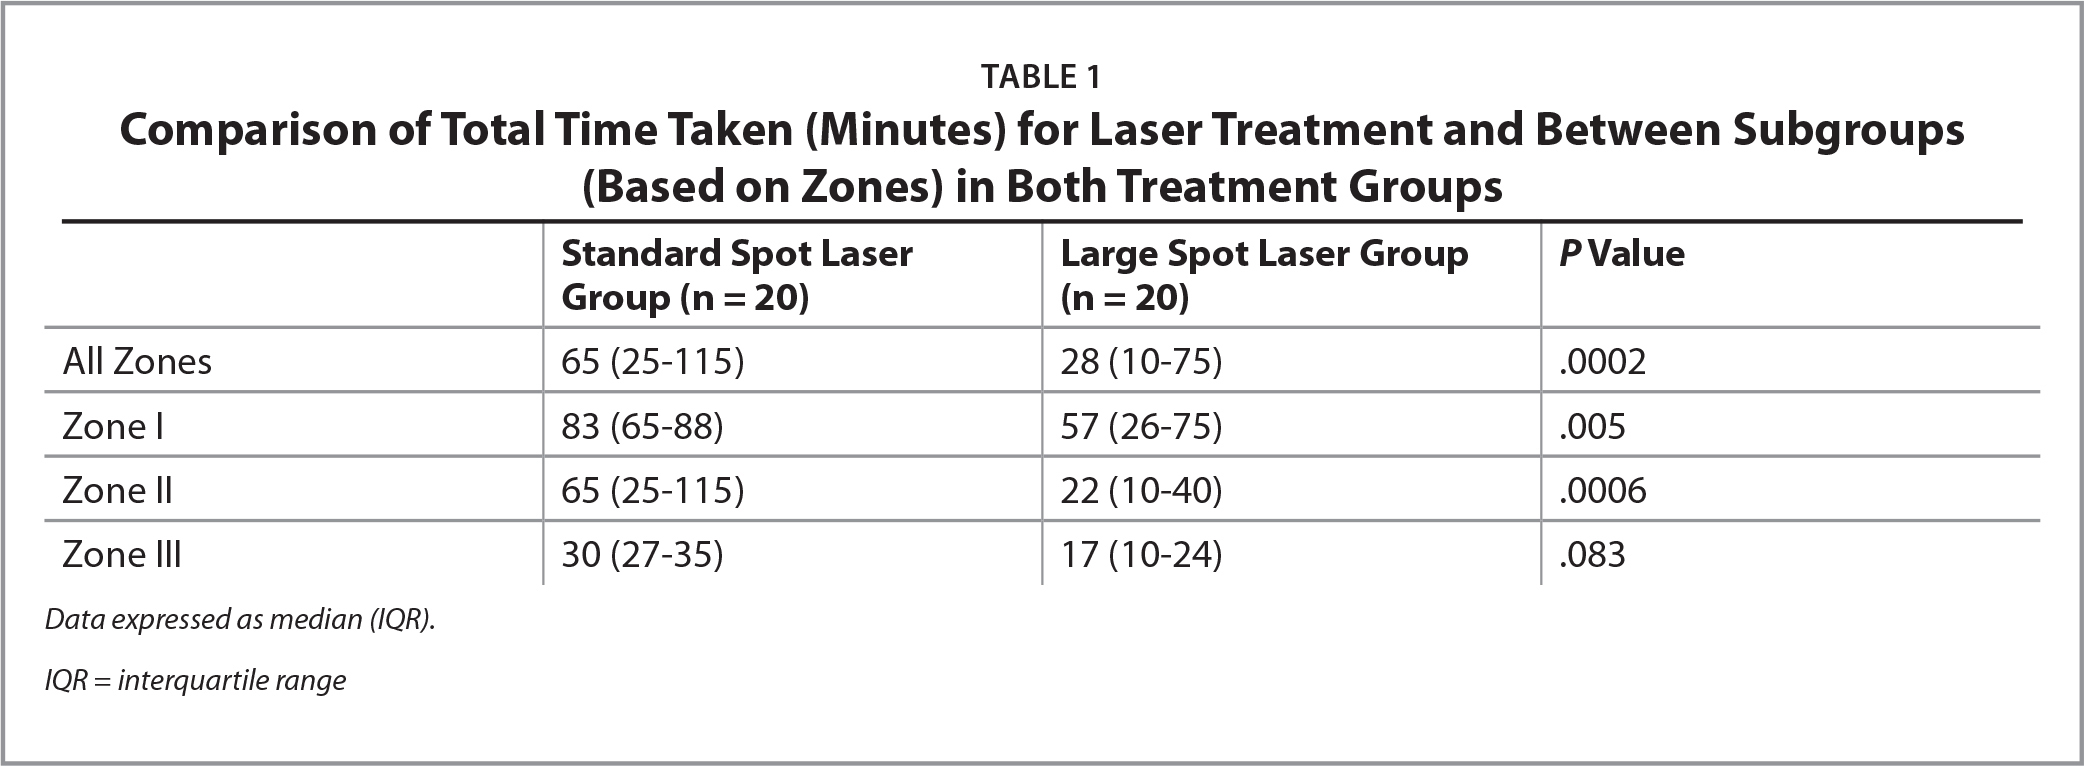 Comparison of Total Time Taken (Minutes) for Laser Treatment and Between Subgroups (Based on Zones) in Both Treatment Groups